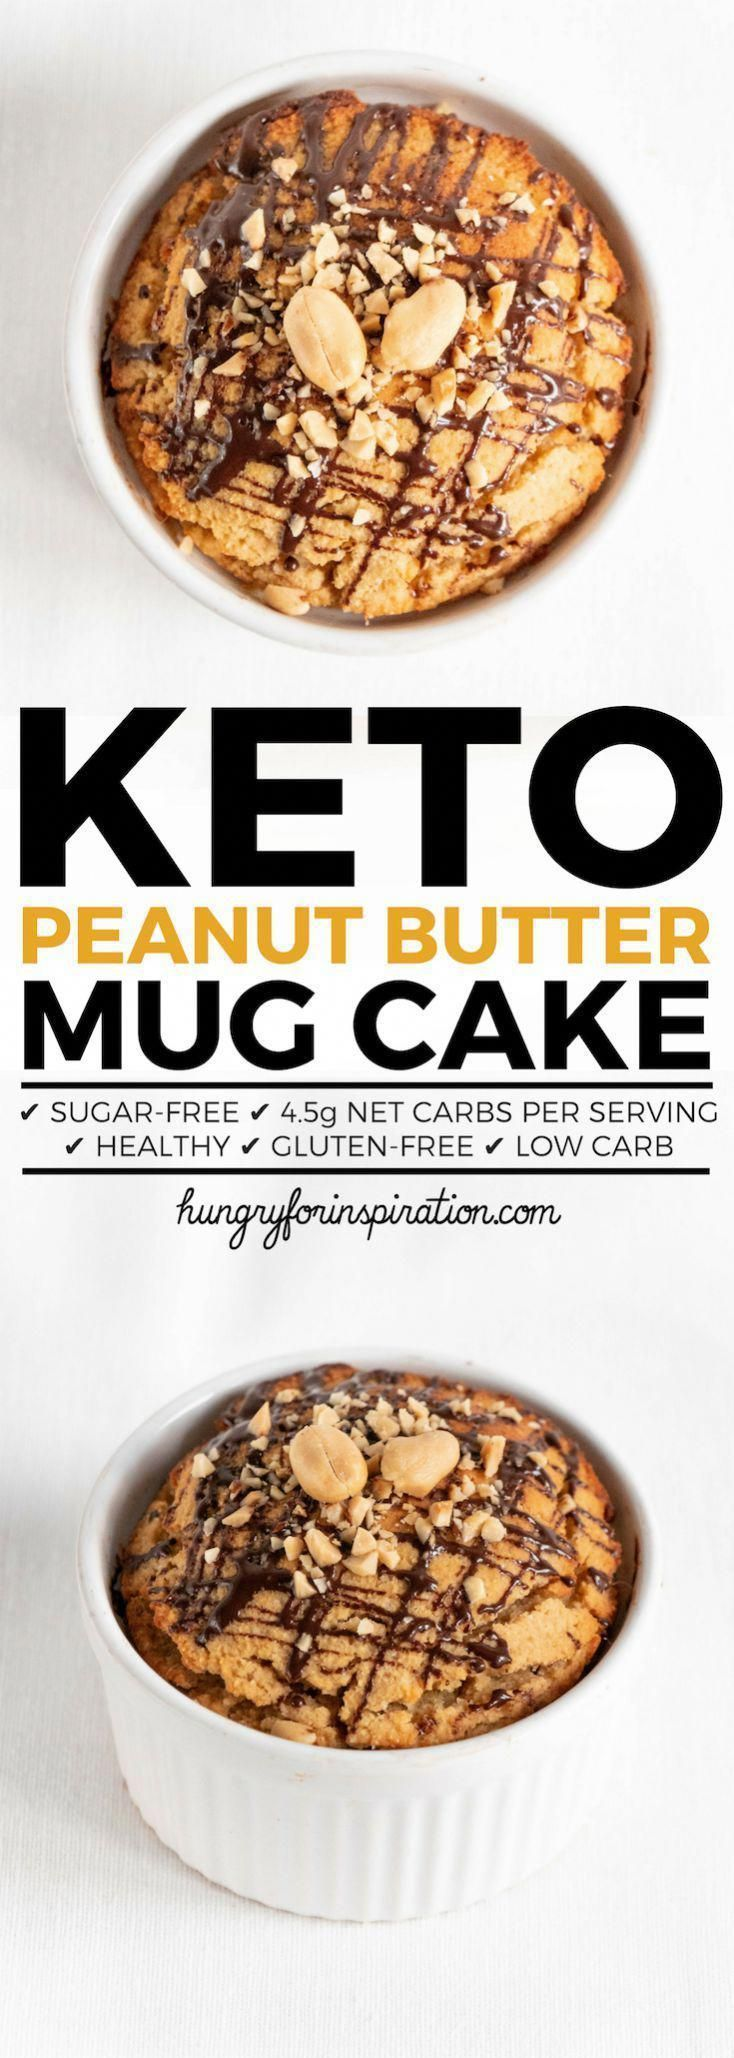 This Peanut Butter Keto Mug Cake is perfect for peanut butter lovers! Such an easy Keto Dessert or Keto Snack recipe with only 4.5g net carbs per serving! Ready in less than 10 minutes! #keto #ketodiet #ketorecipes #ketodessert #mugcake #ketogenic #ketogenicdiet #lowcarb #lowcarbrecipes #lowcarbdiet #lowcarbdessert #KetoChallenge #proteinmugcakes